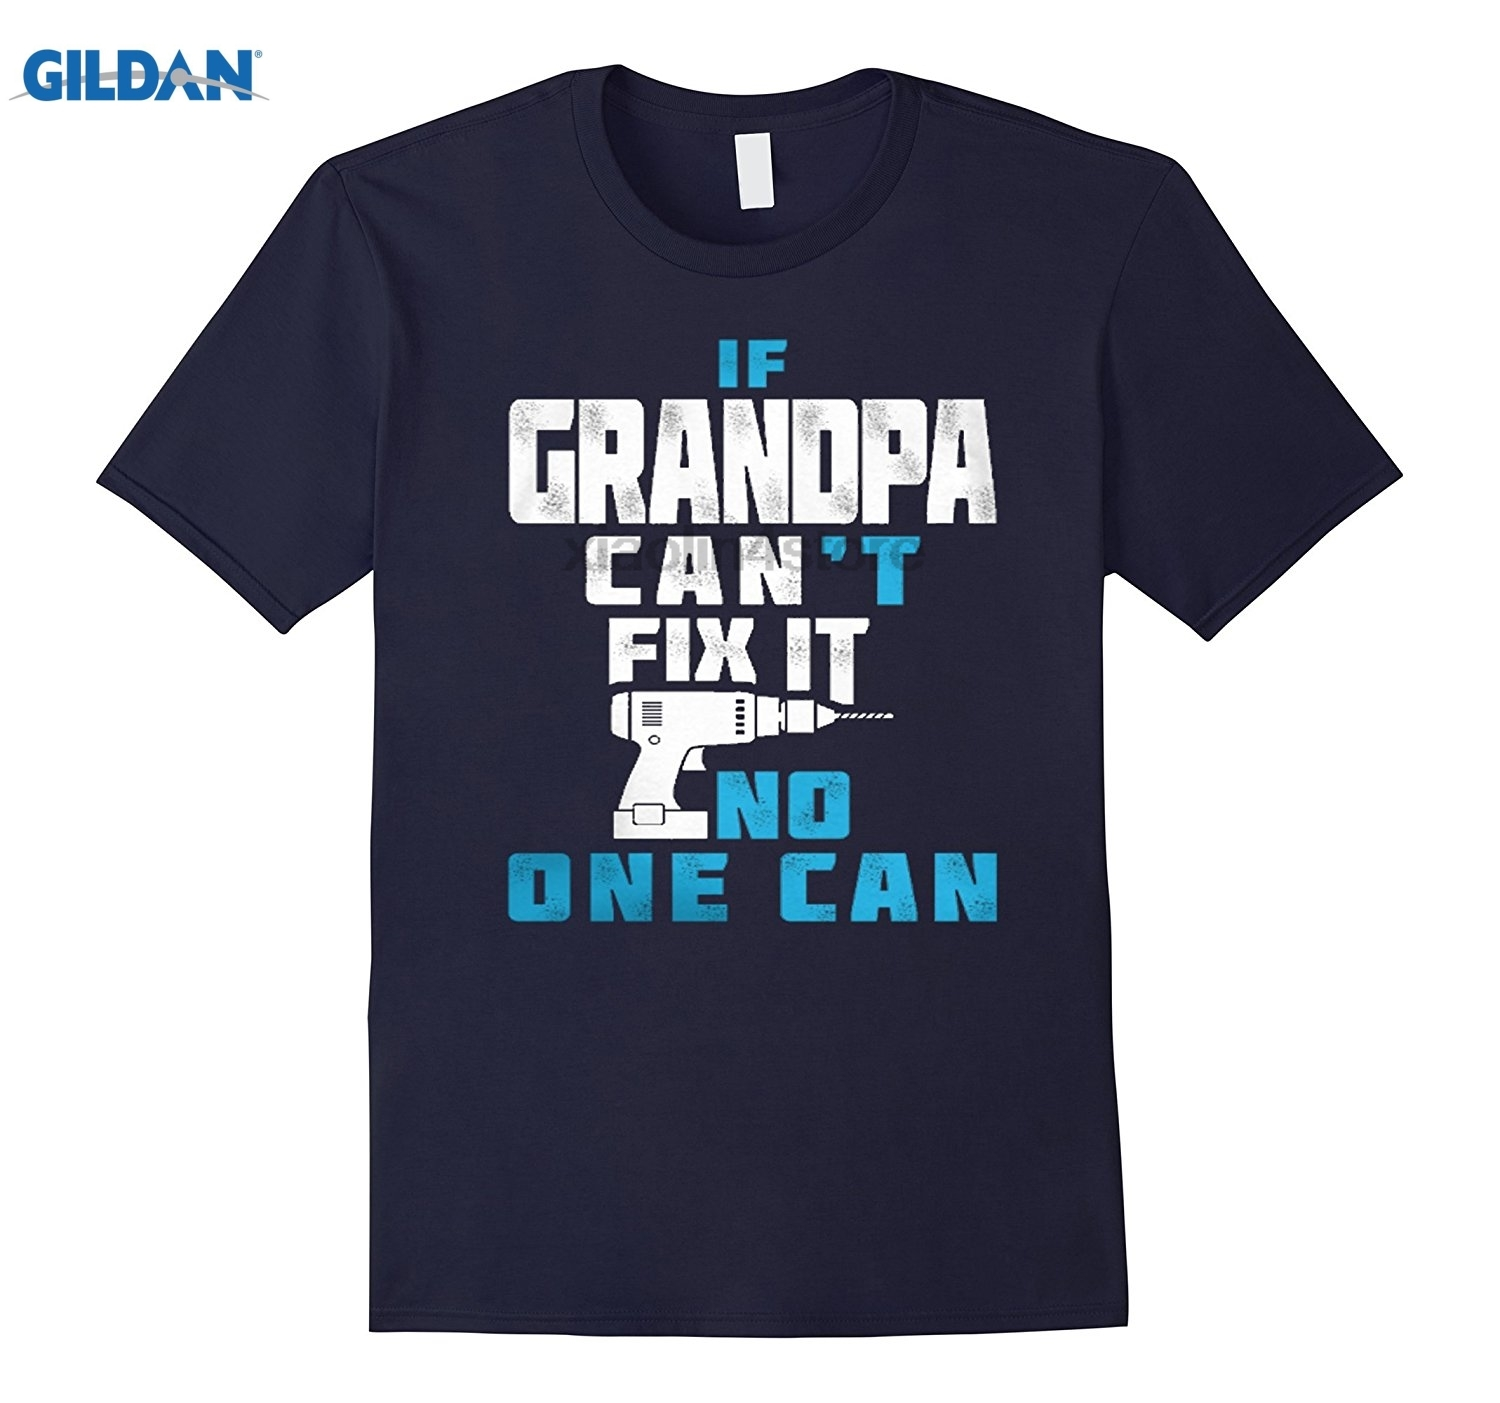 GILDAN If Grandpa cant fix it no one can T-shirt Create Your Own Tee Shirt O-Neck Short-Sleeve Fathers Day Gift T-Shirt